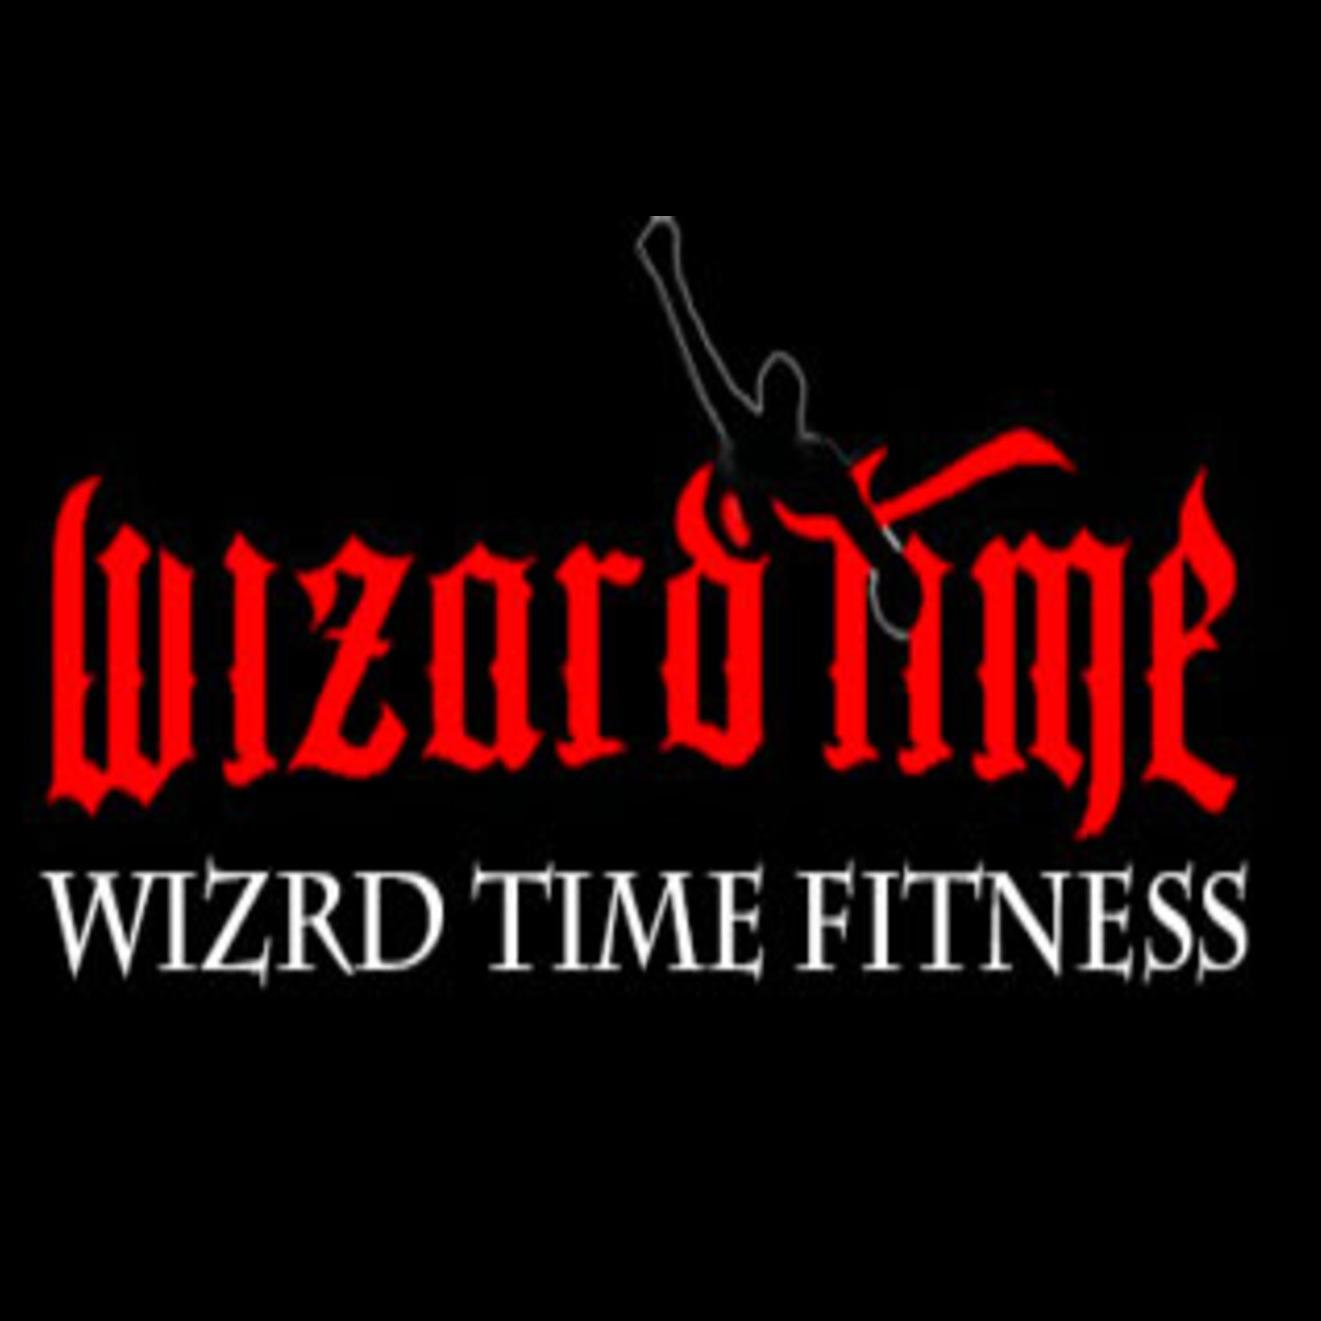 Wizard time fitness